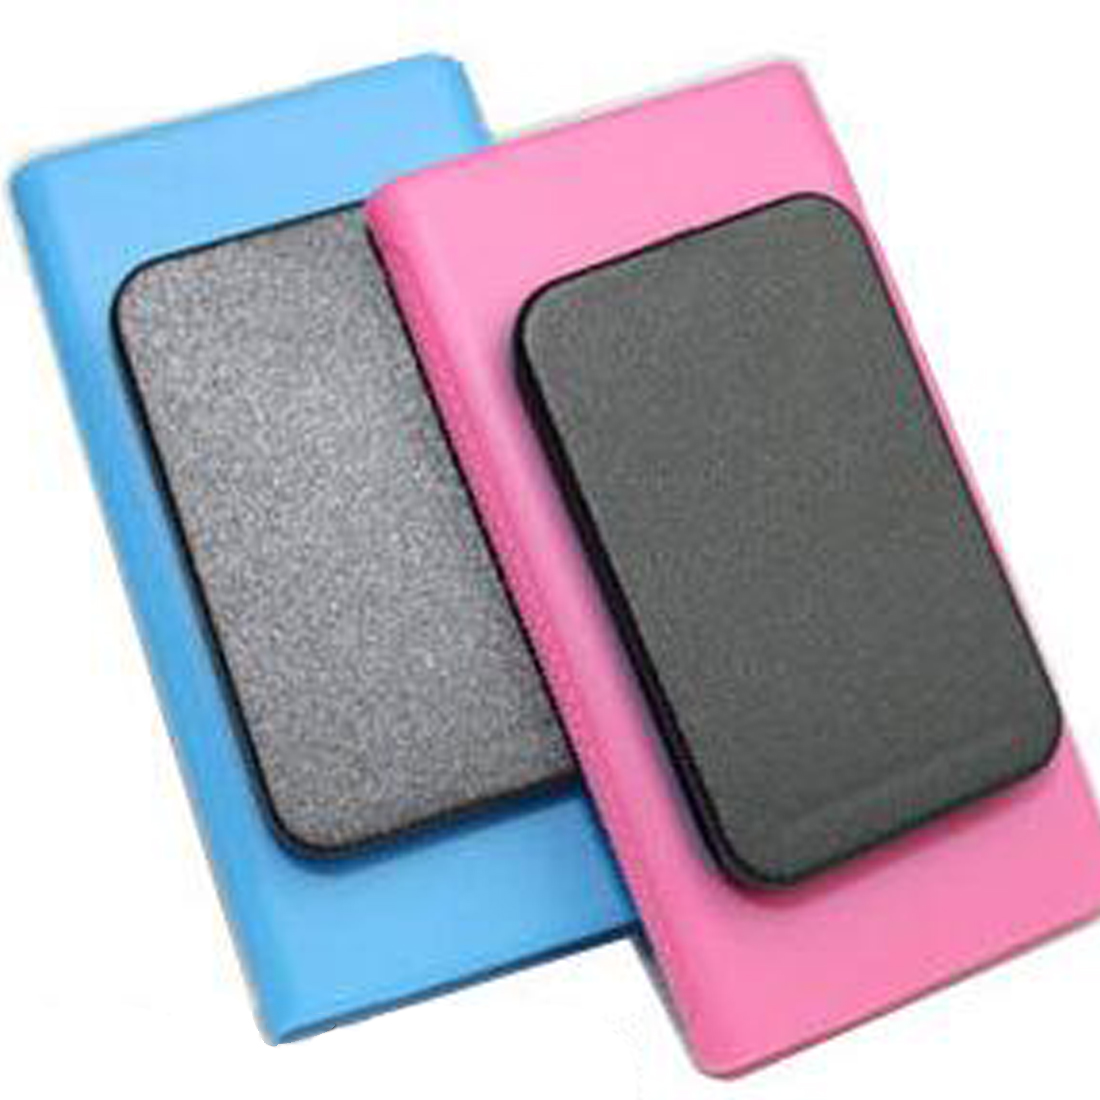 etmakit-hot-sale-new-arrival-slim-soft-tpu-silicone-rubber-skin-case-cover-holder-clip-for-fontbipod